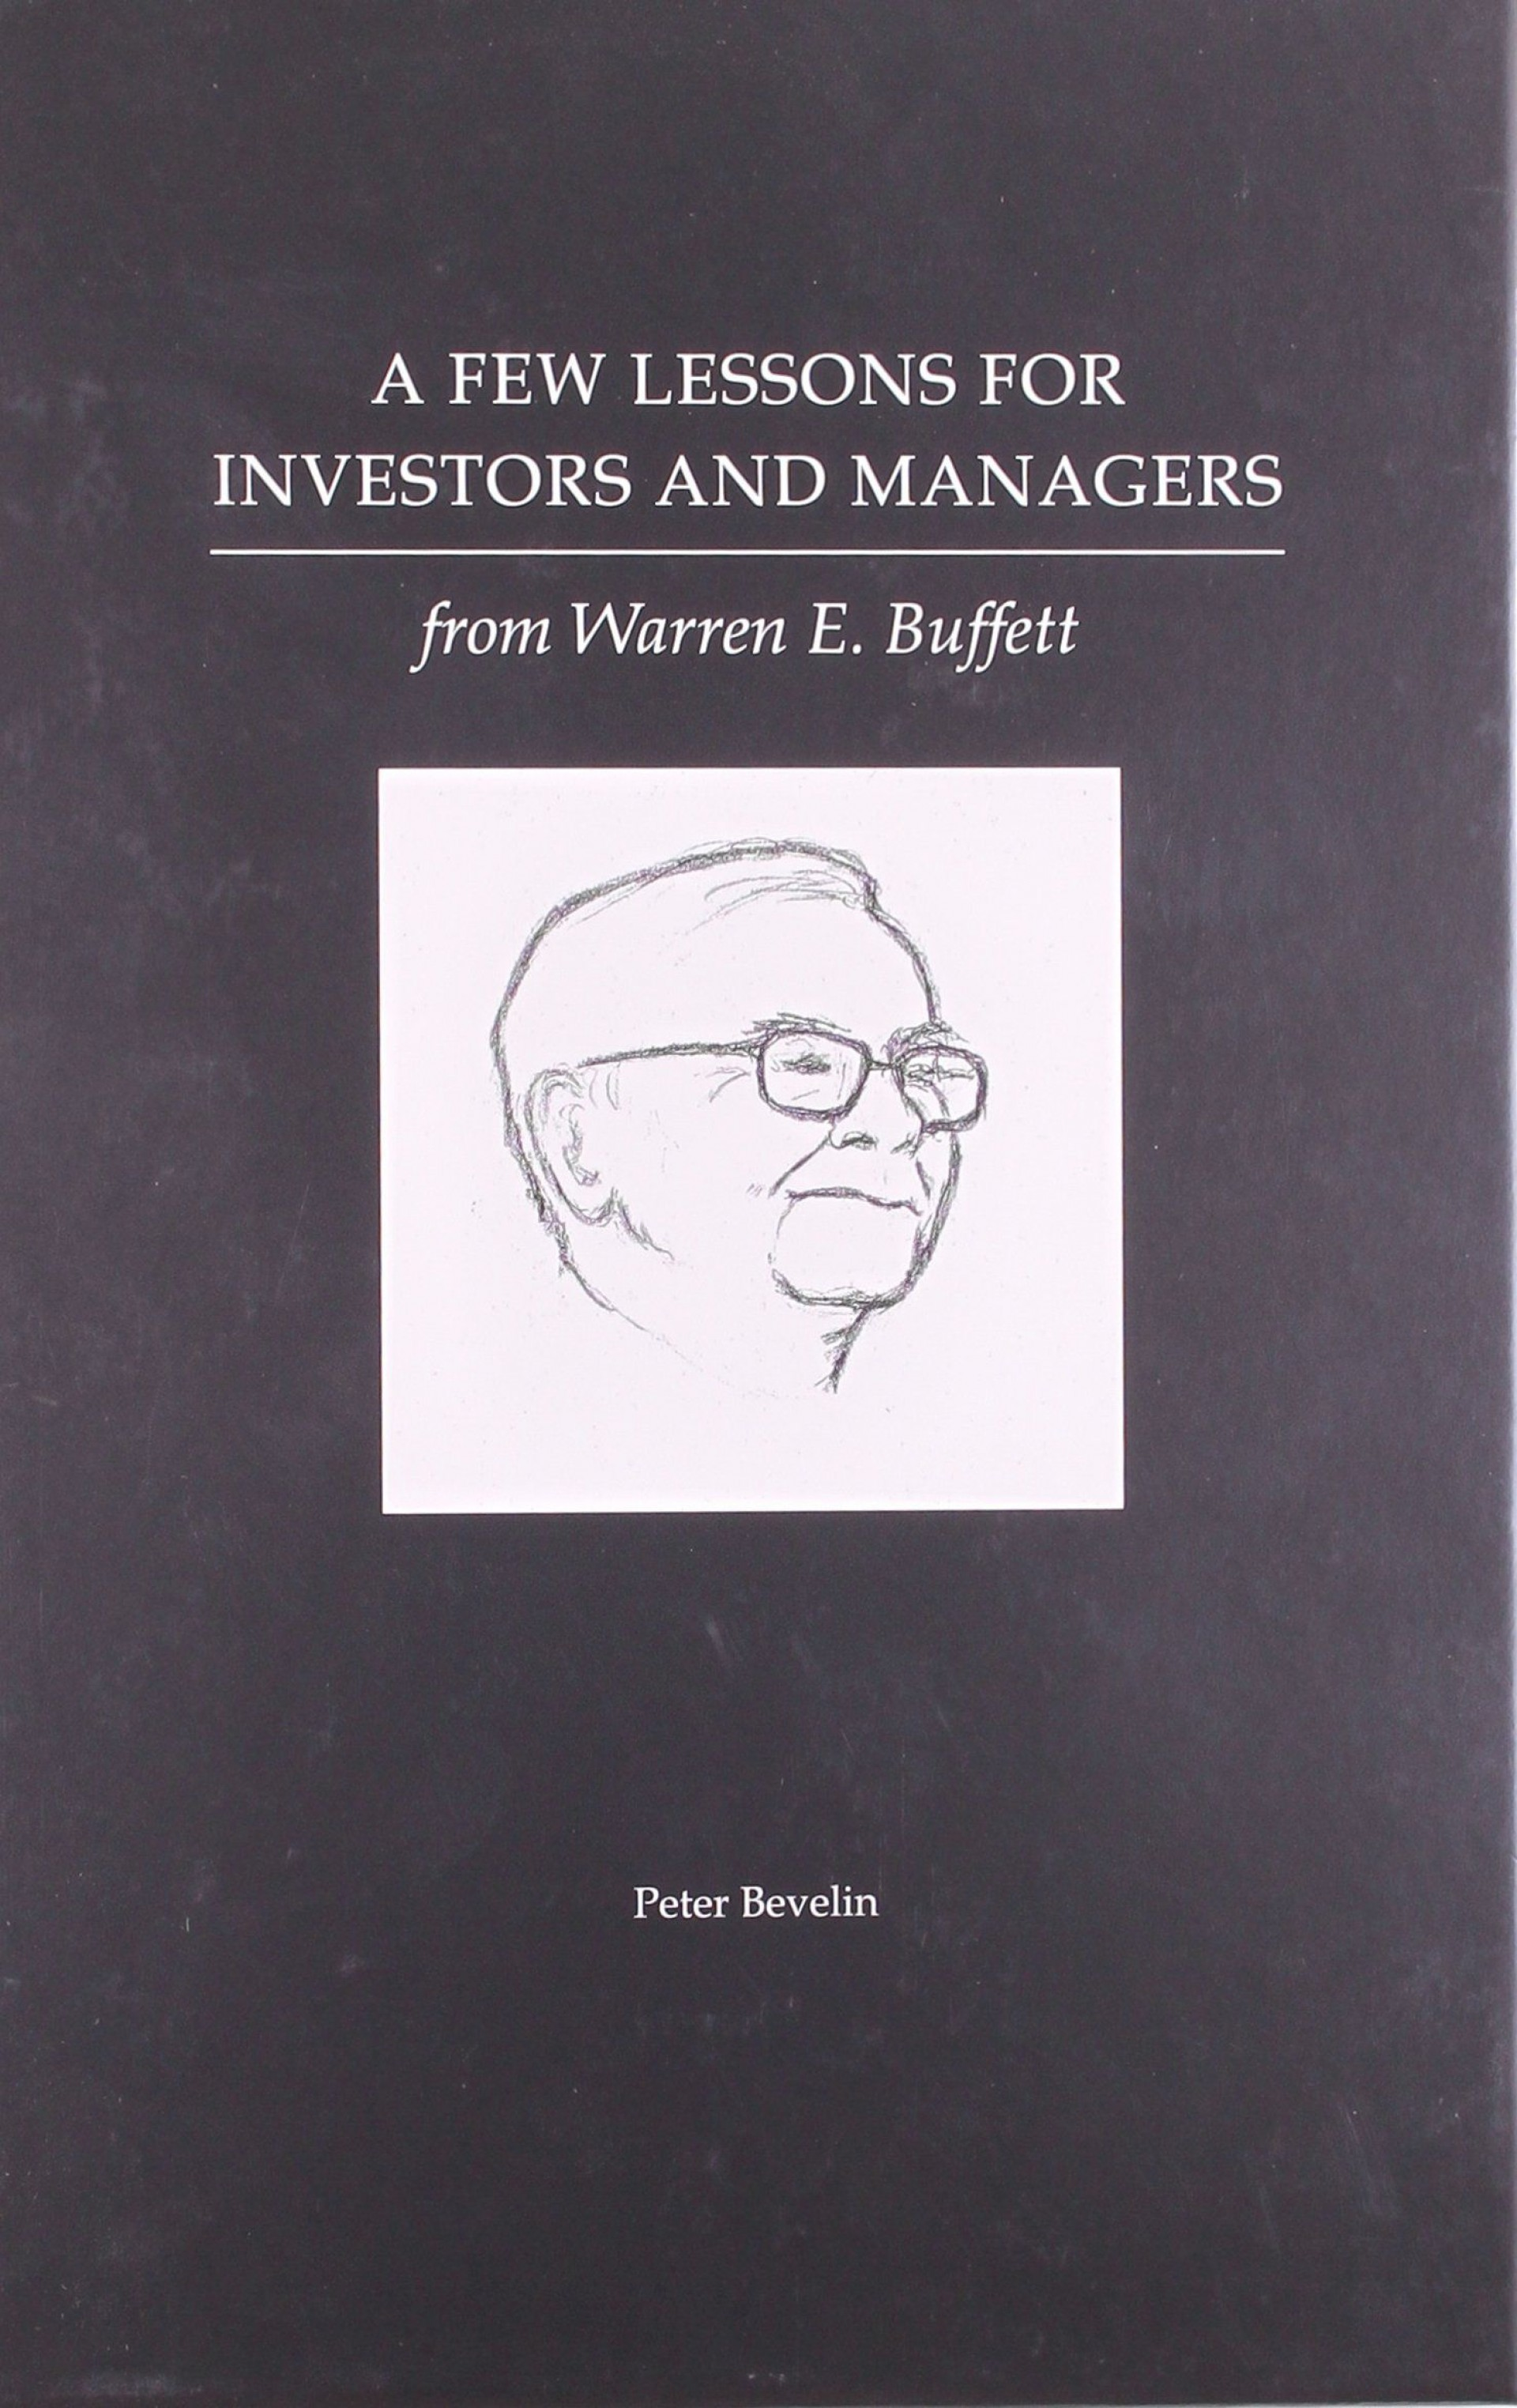 006 Essay Example The Essays Of Warren Buffett Lessons For Investors And Managers Striking 4th Edition Free Pdf 1920